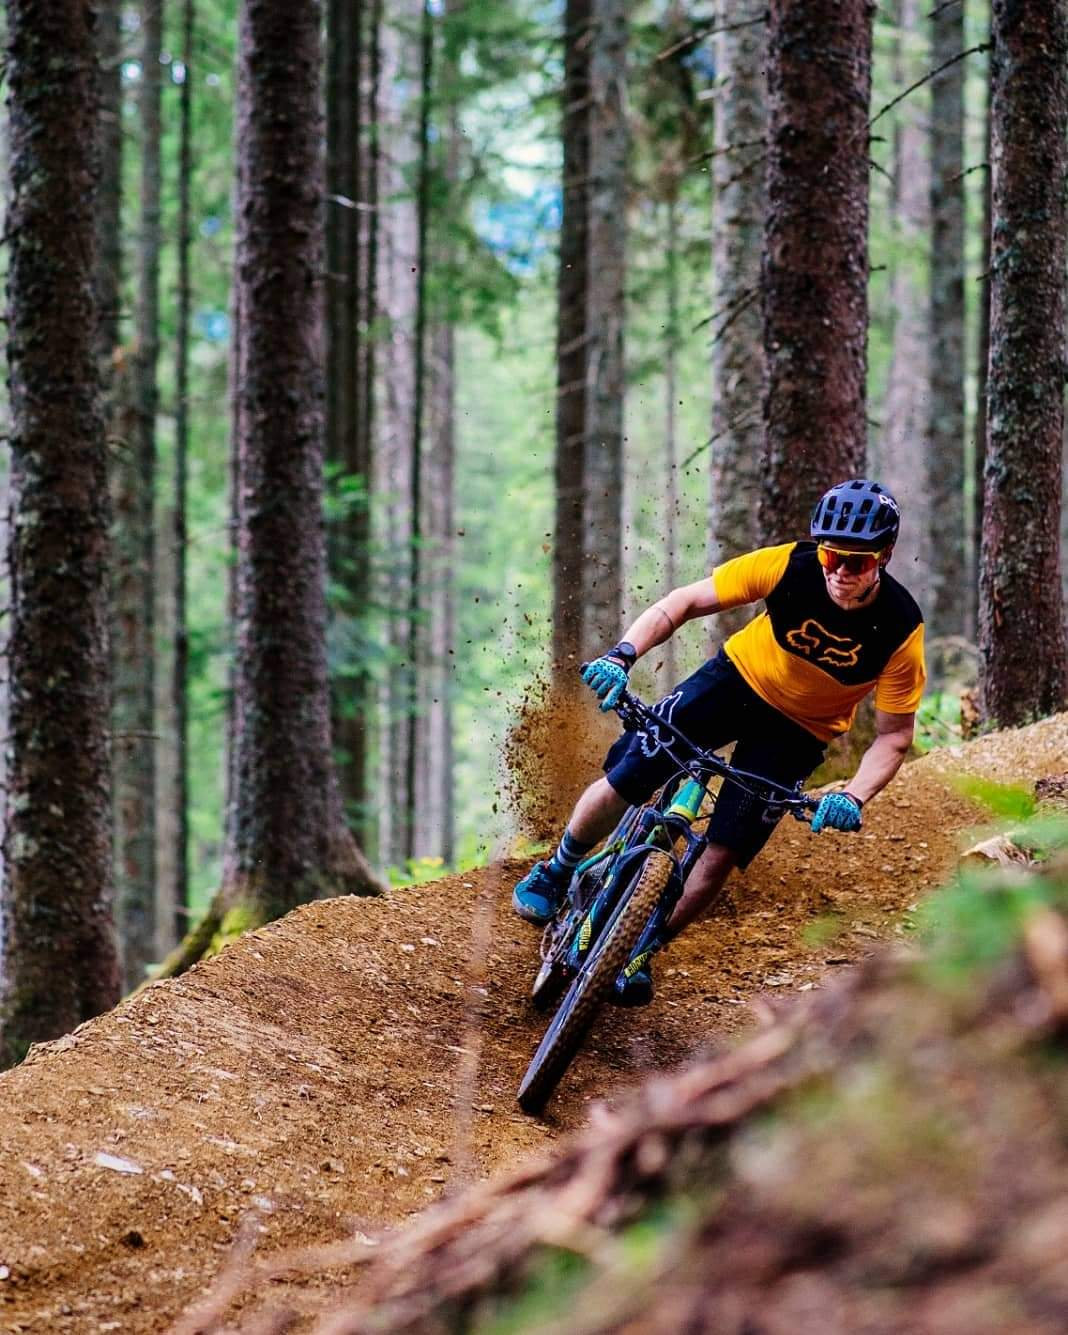 Ride stoked Camp #9 / 6.- 8.8. 2021